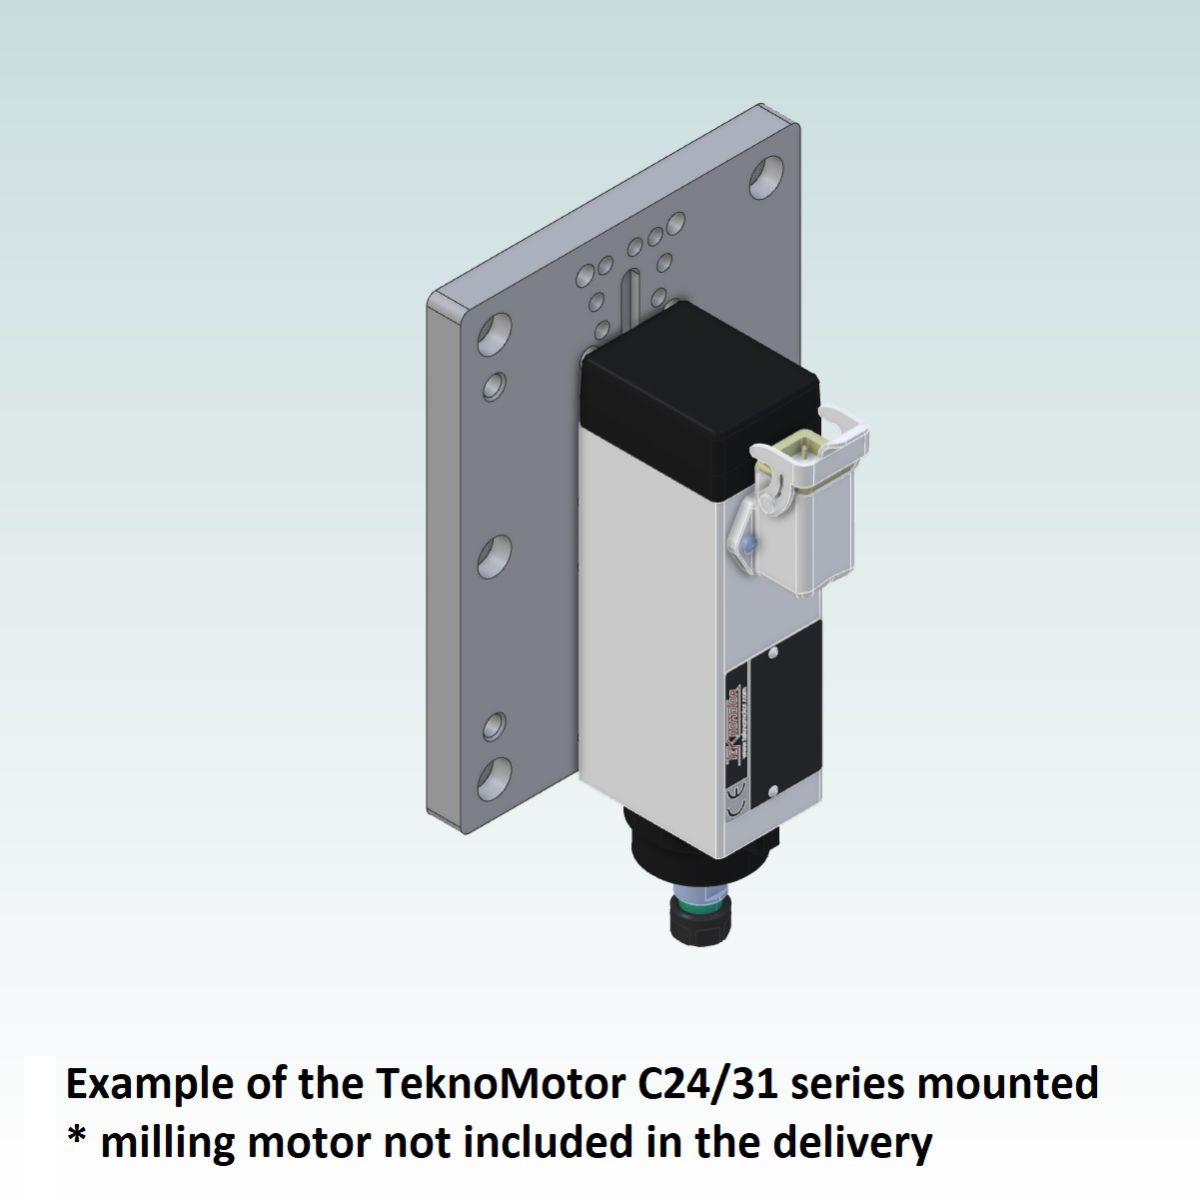 8997 teknomotor mountplate for 40x160 profile with c2431 mounted